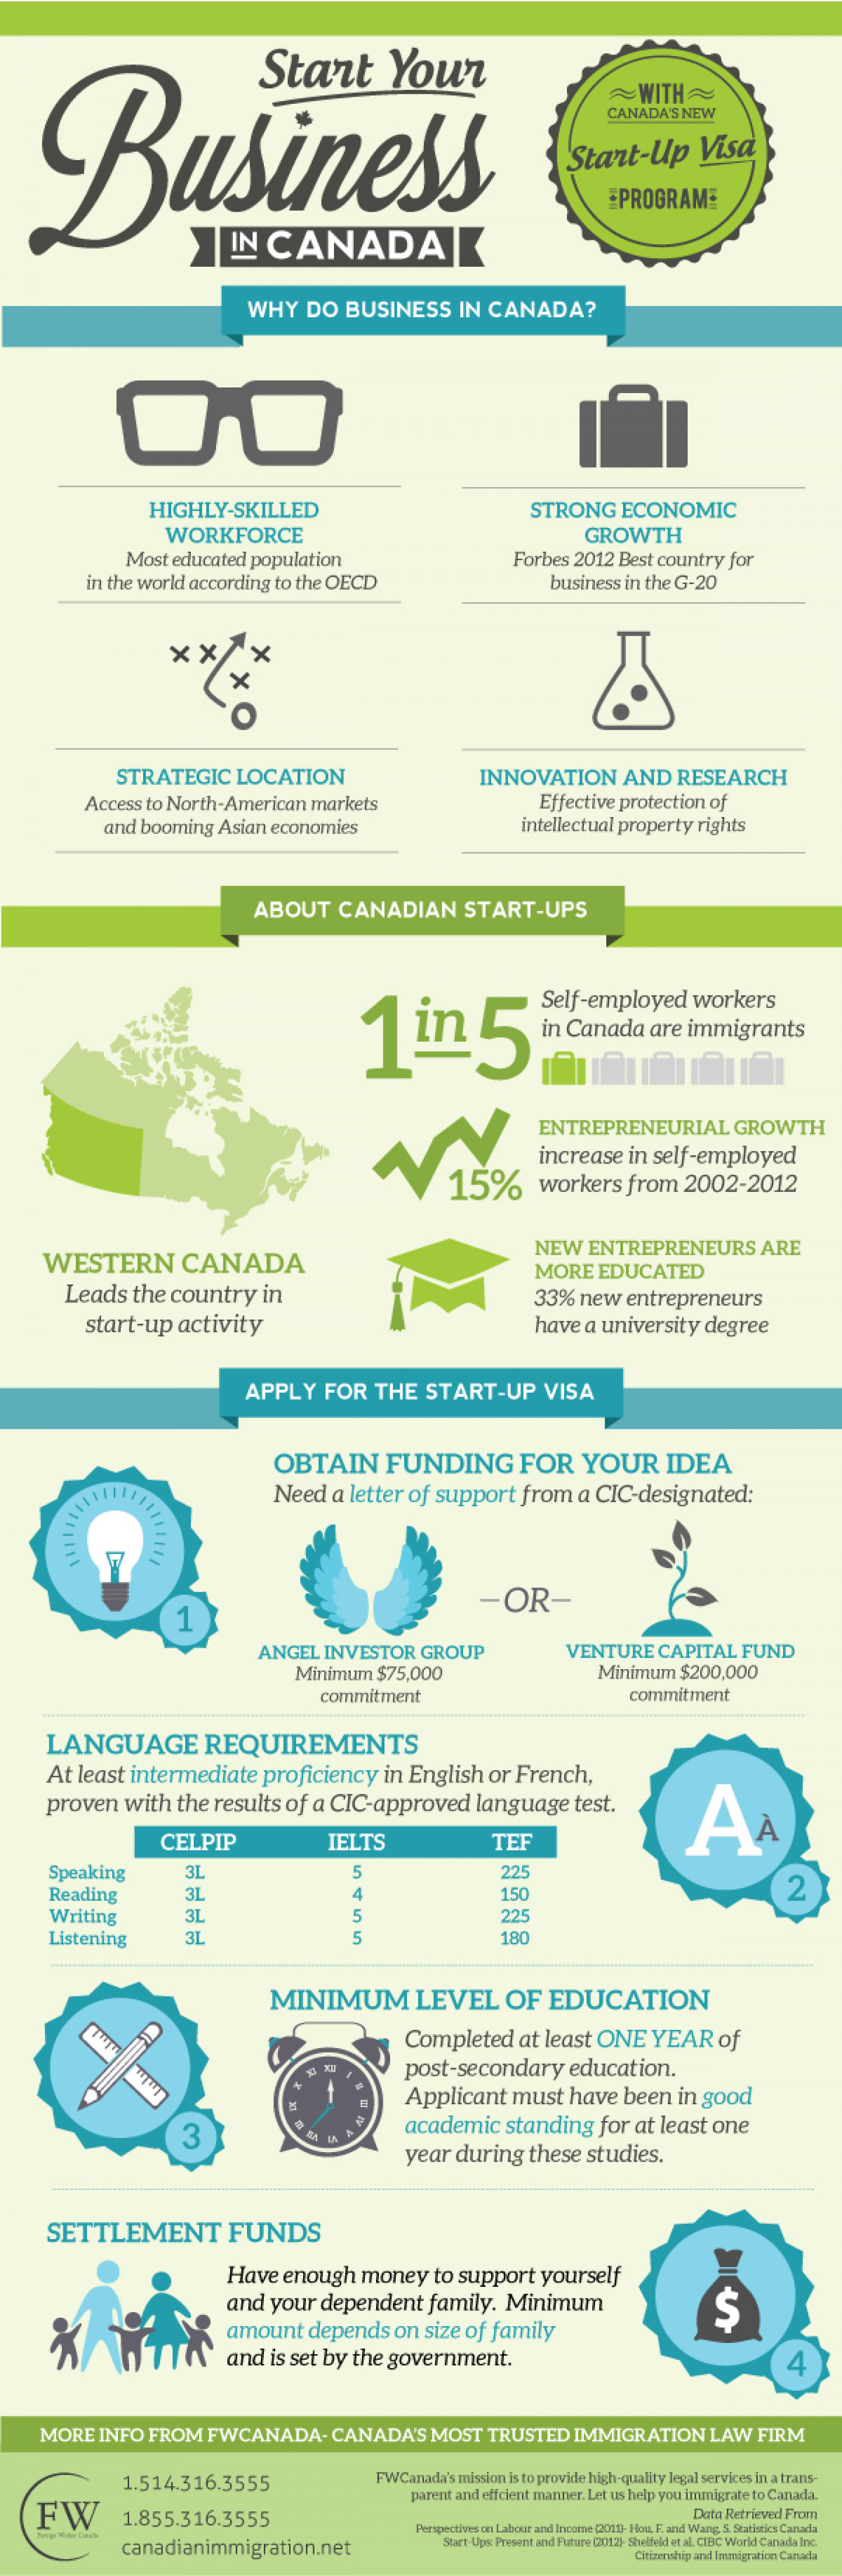 Start Your Business in Canada Infographic